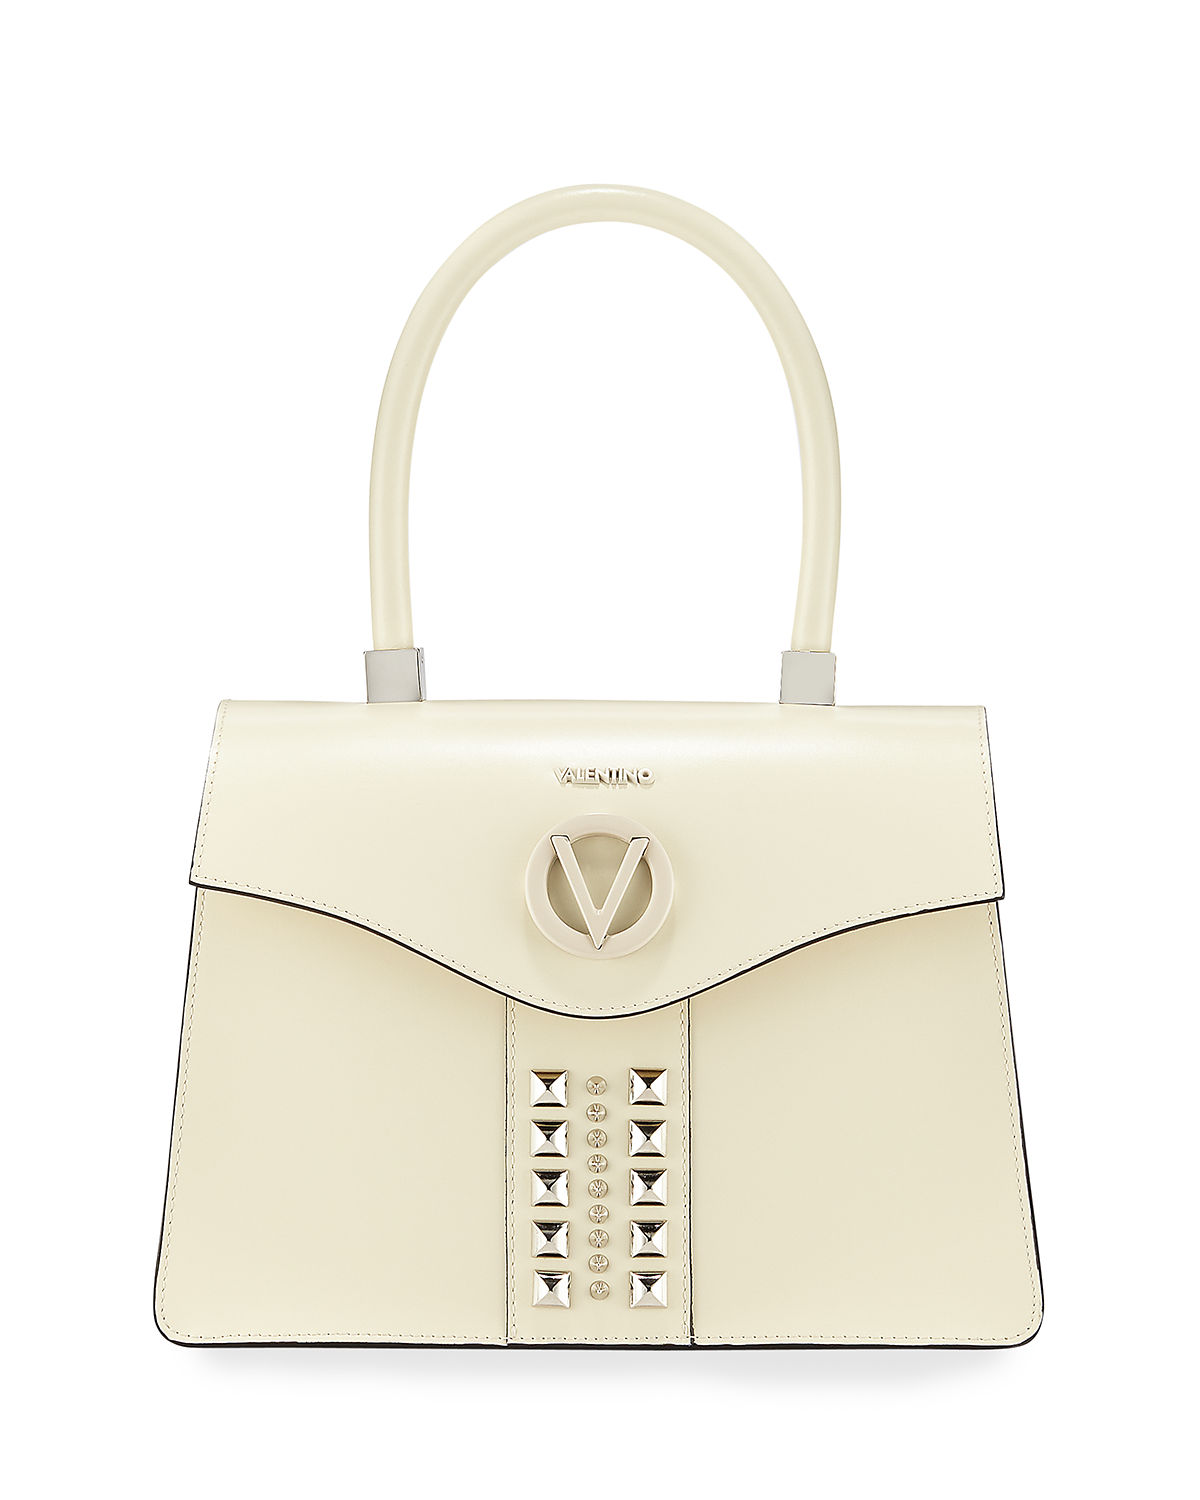 Melanie Soave Studded Leather Top-Handle Bag